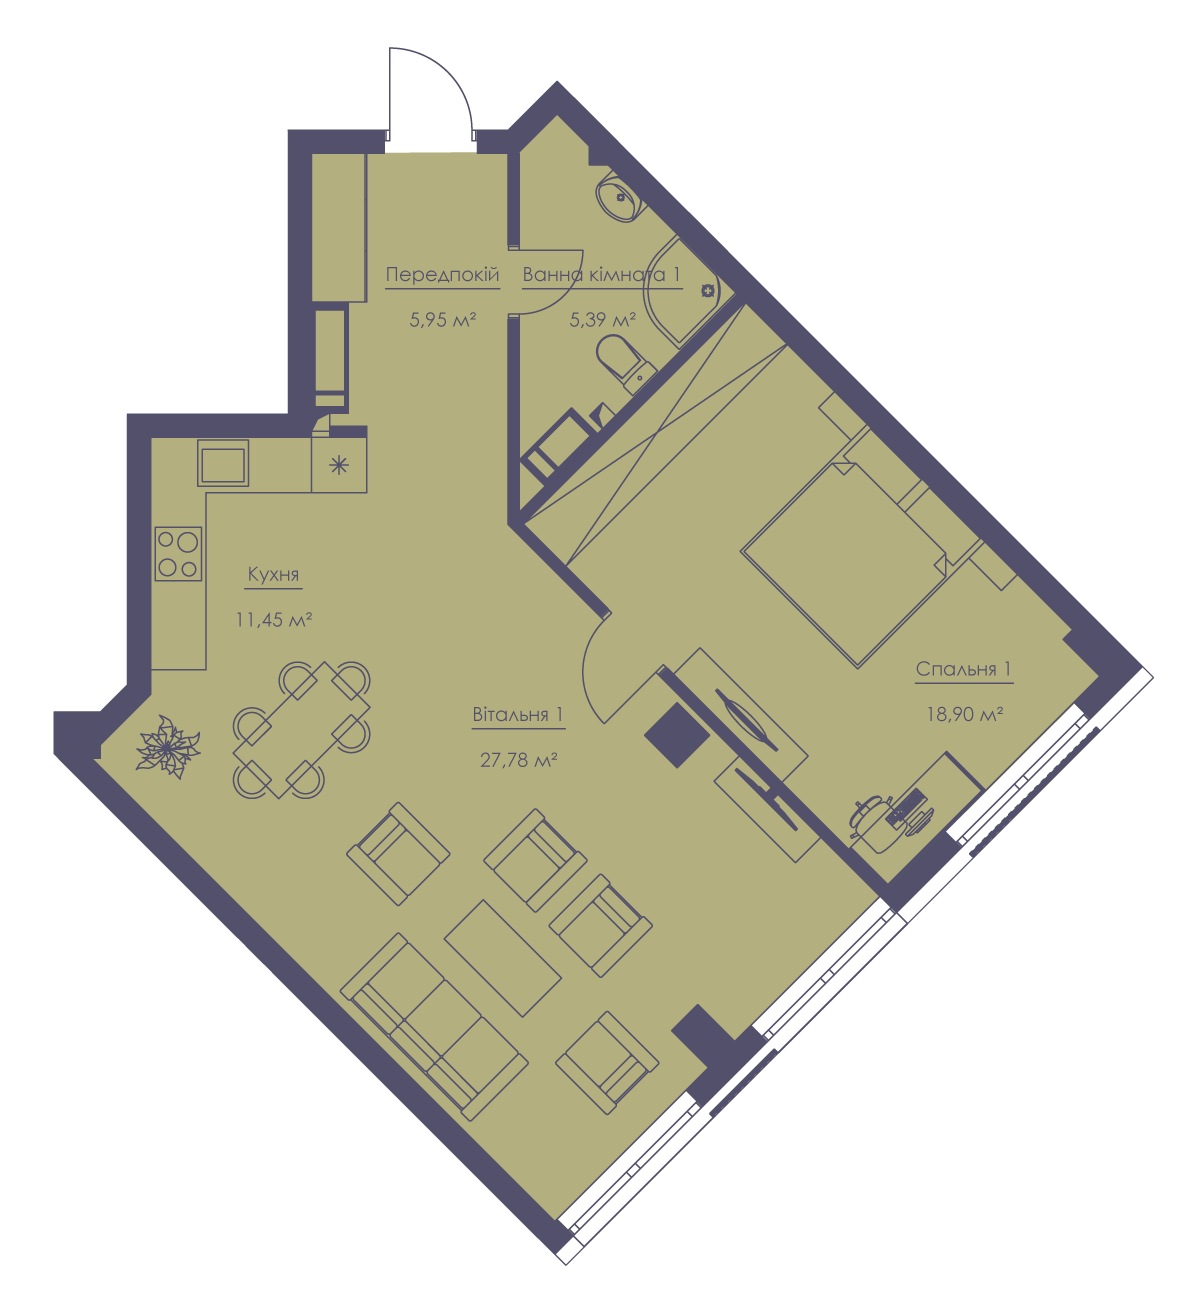 Apartment layout KV_124_3.2a_1_1_1-1